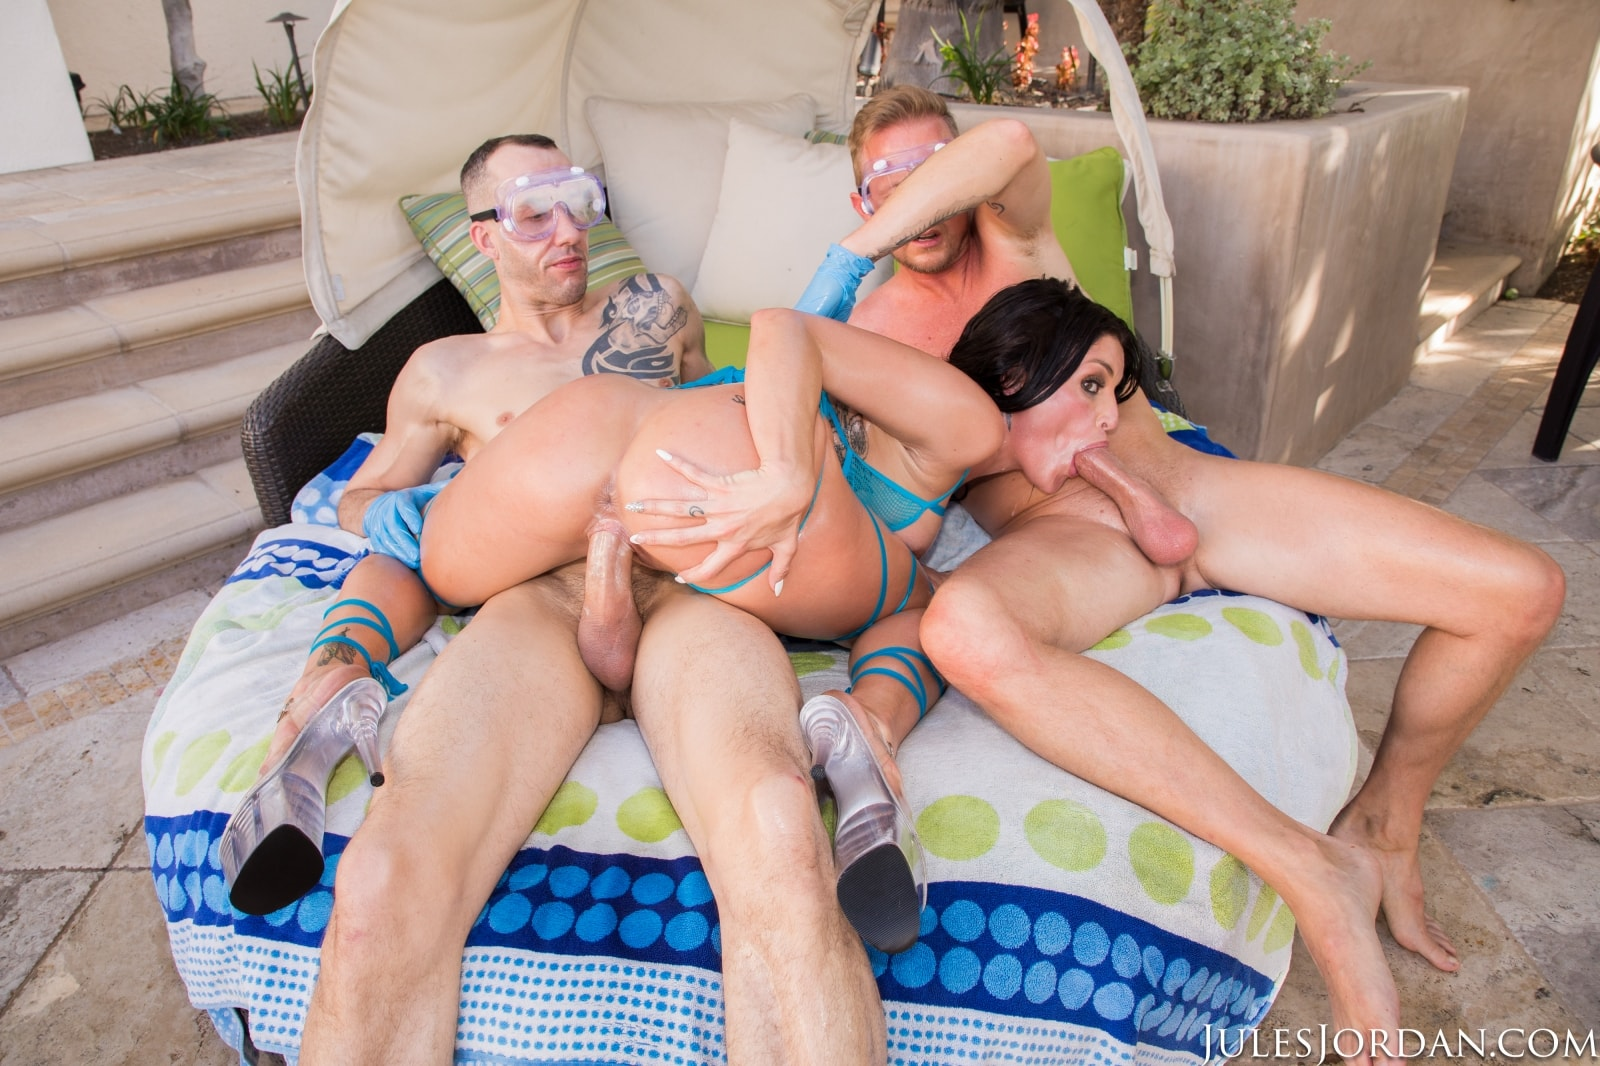 Kissa Sins - 1st Time With Two Cocks. Double Creampie! | Picture (63)